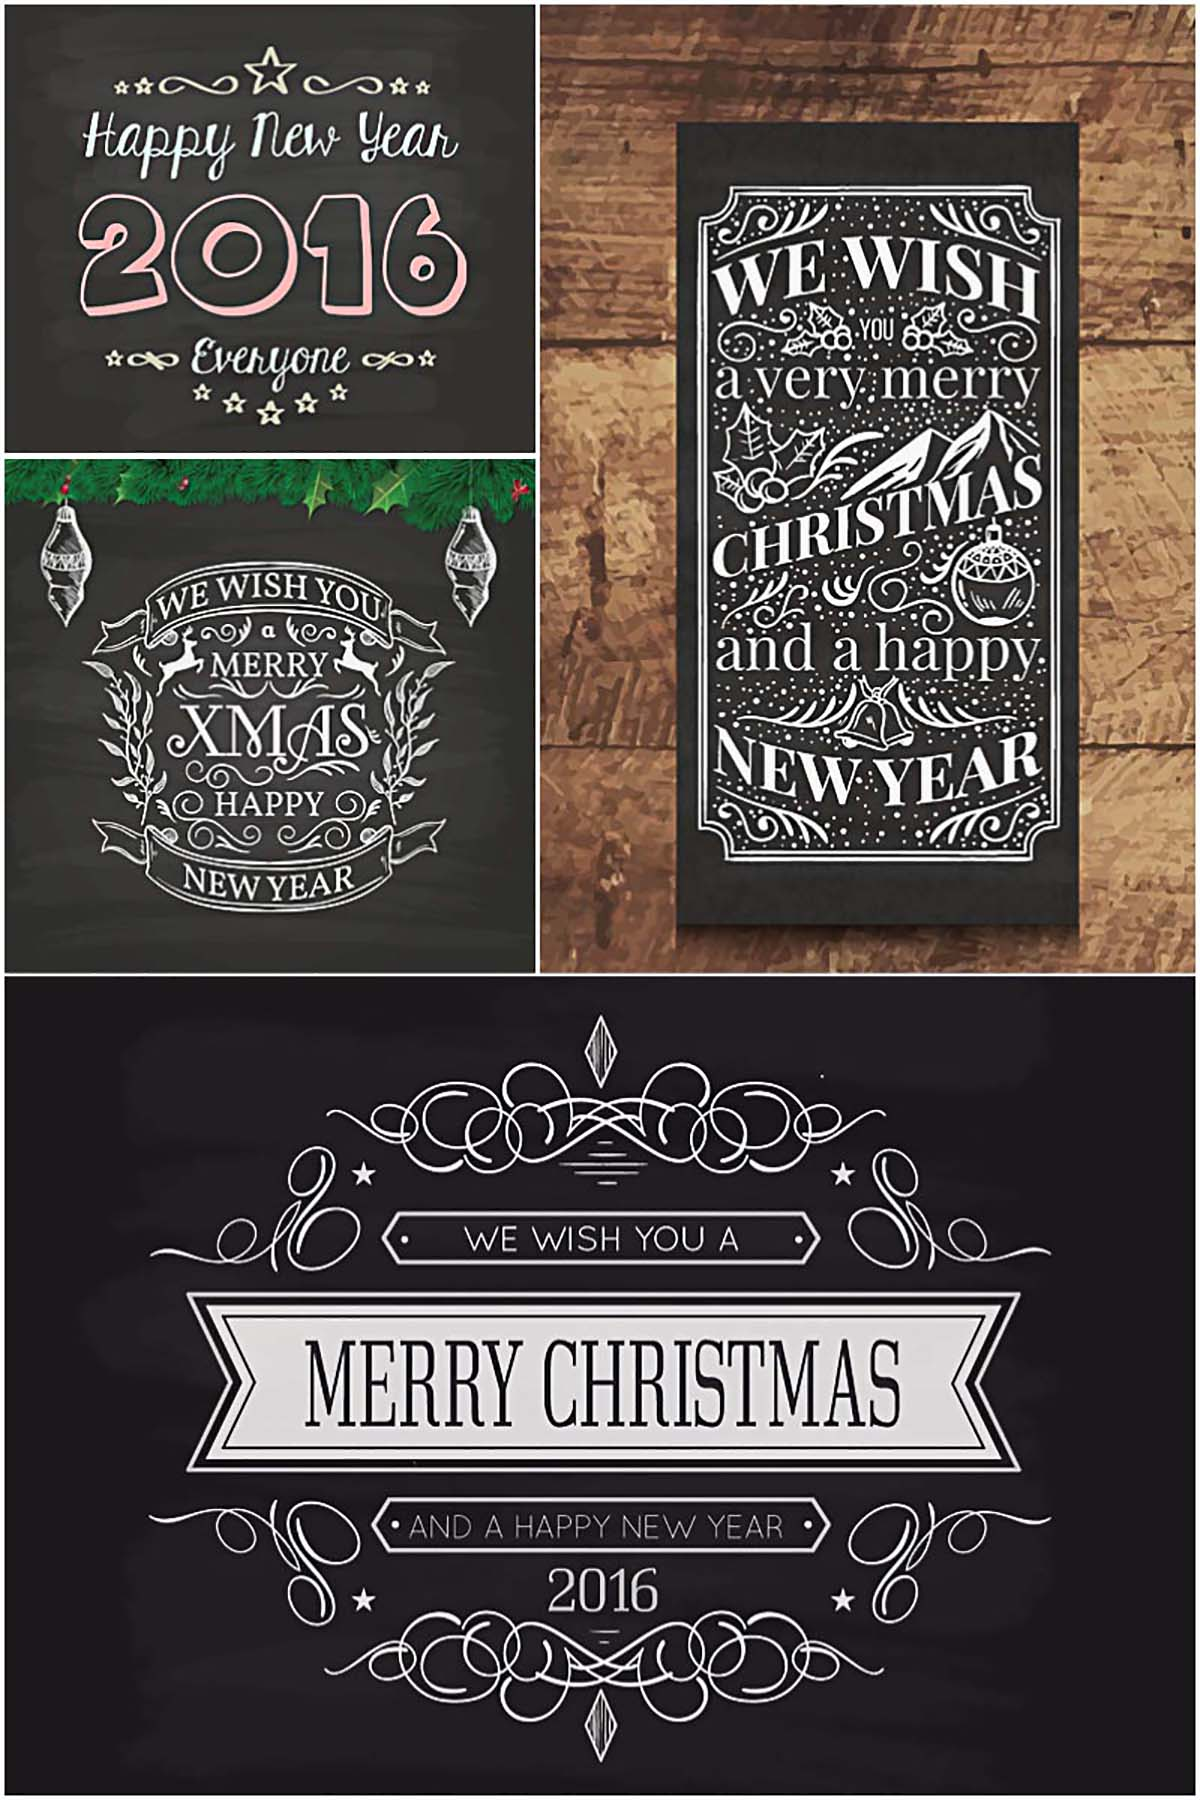 Christmas cards on blackboards retro vector collection